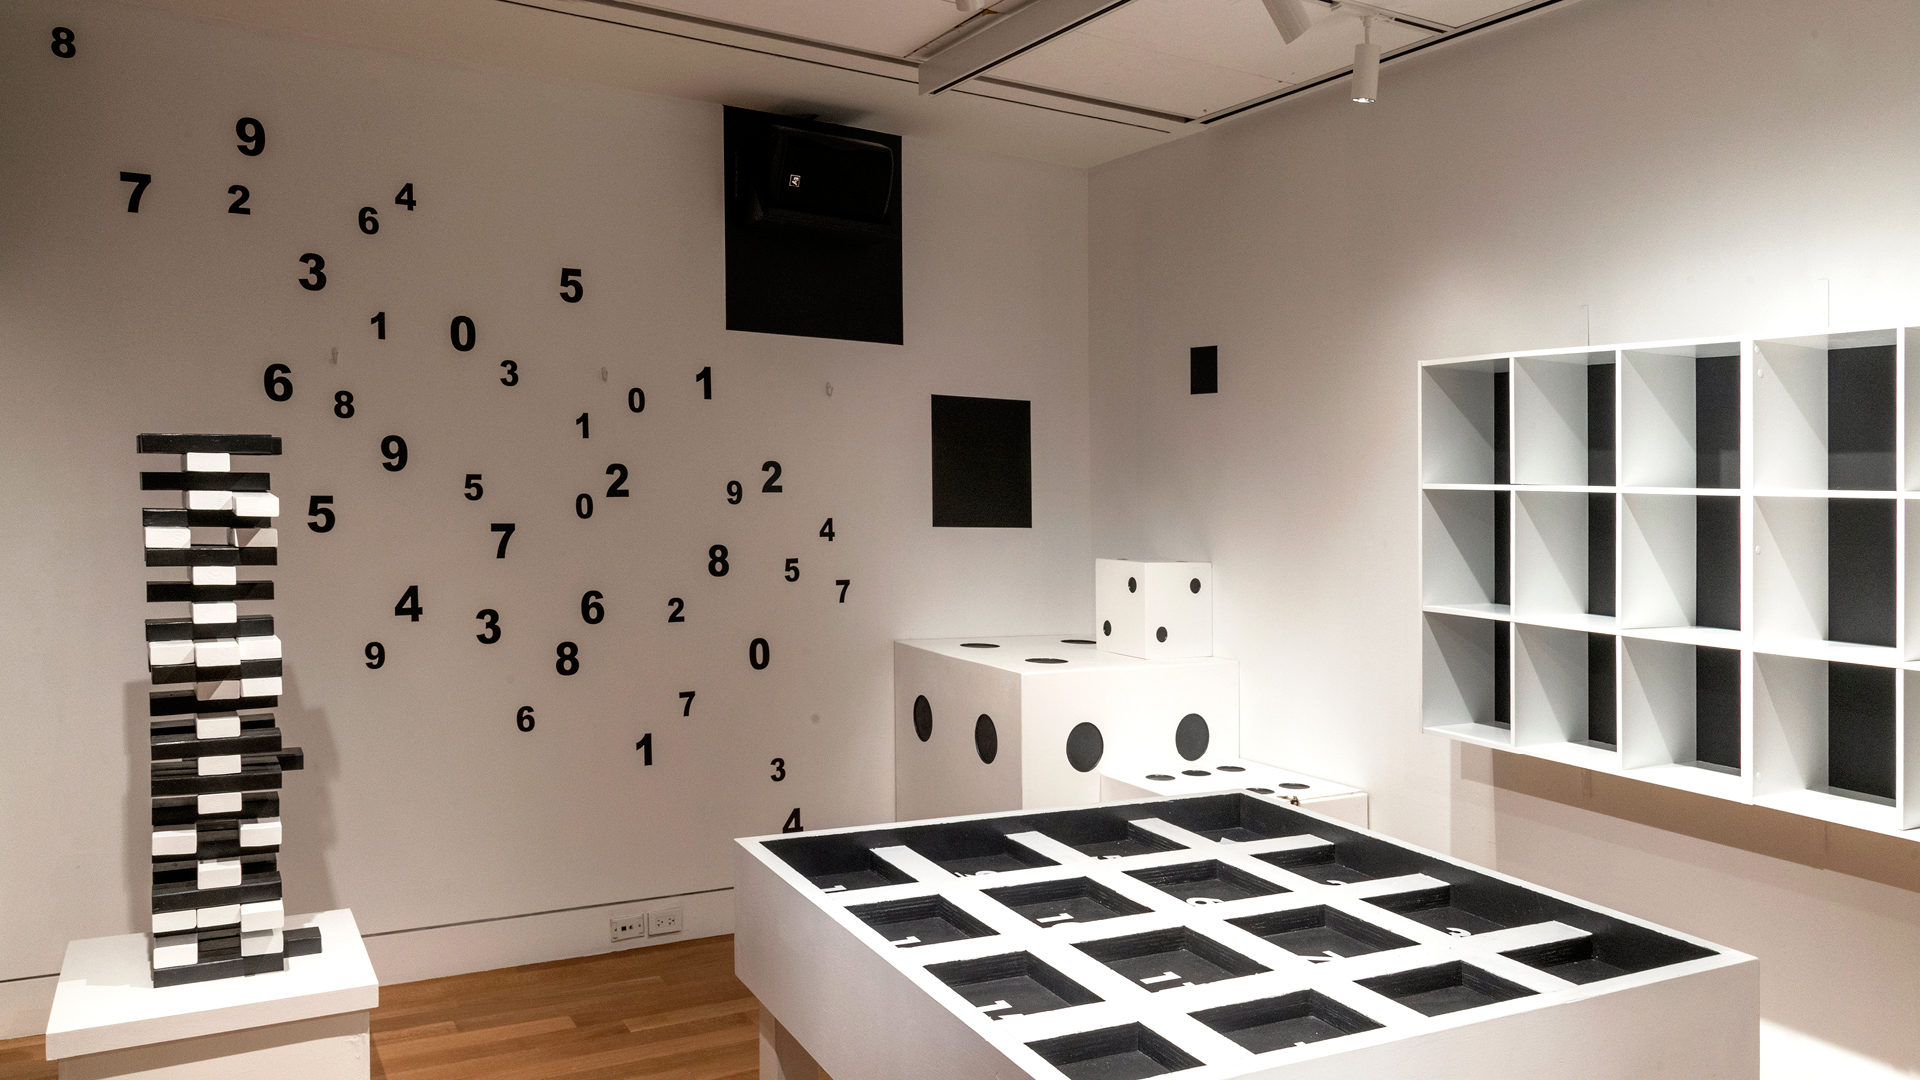 The Privilege of Escape installation by artist Risa Puno at Onassis gallery in New York|  STIRring Experiences | STIRworld